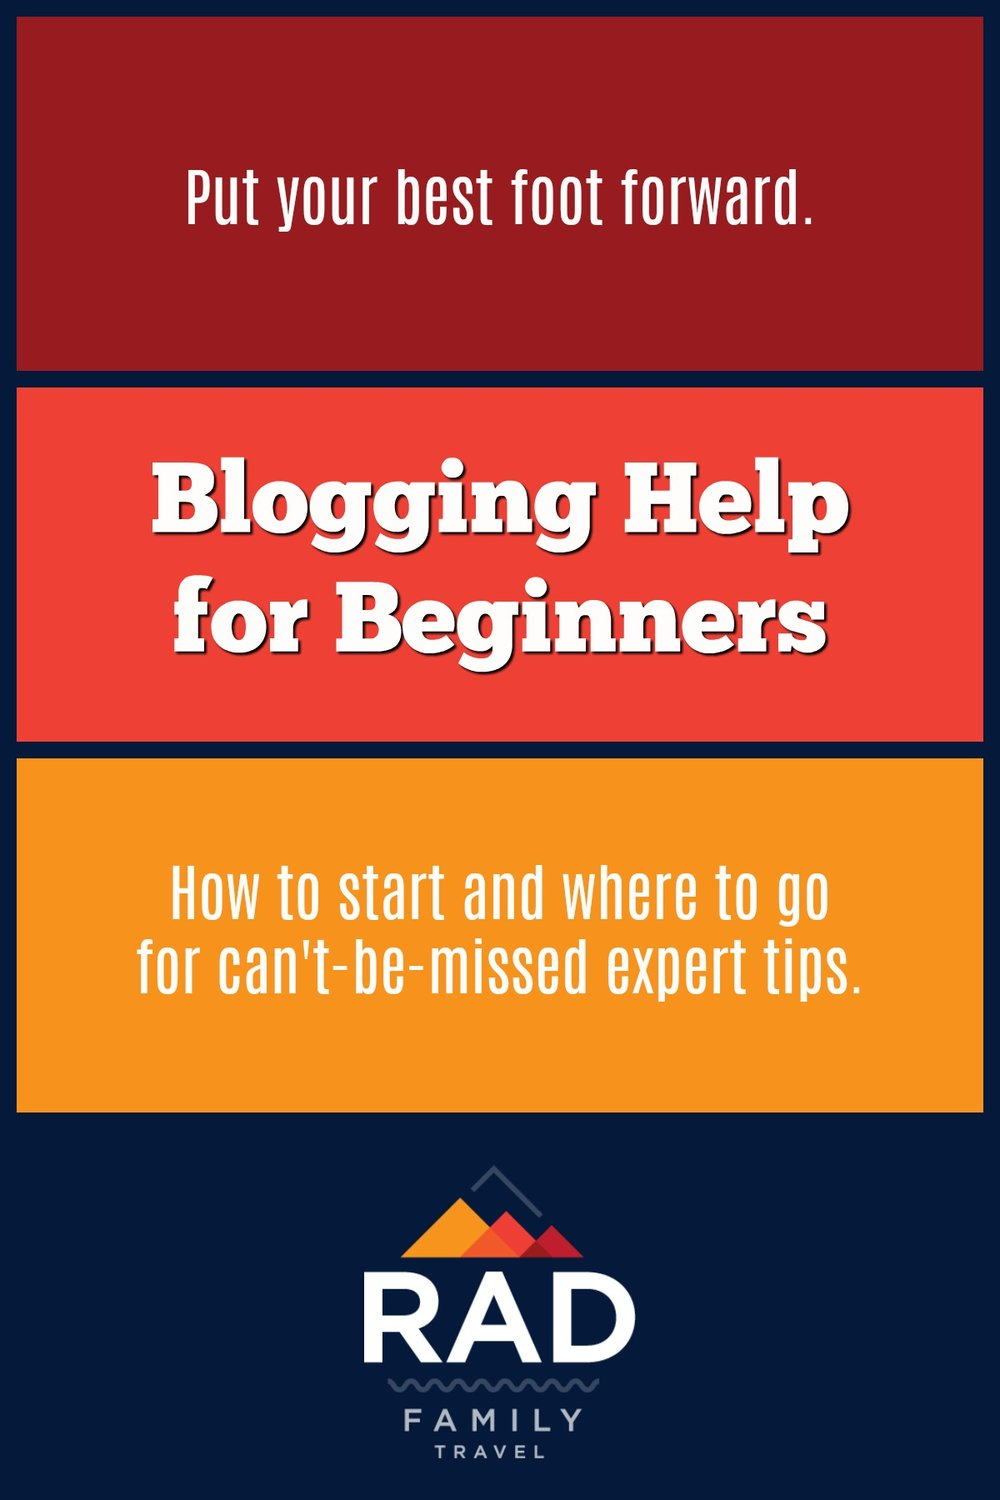 blogging-help-for-beginners